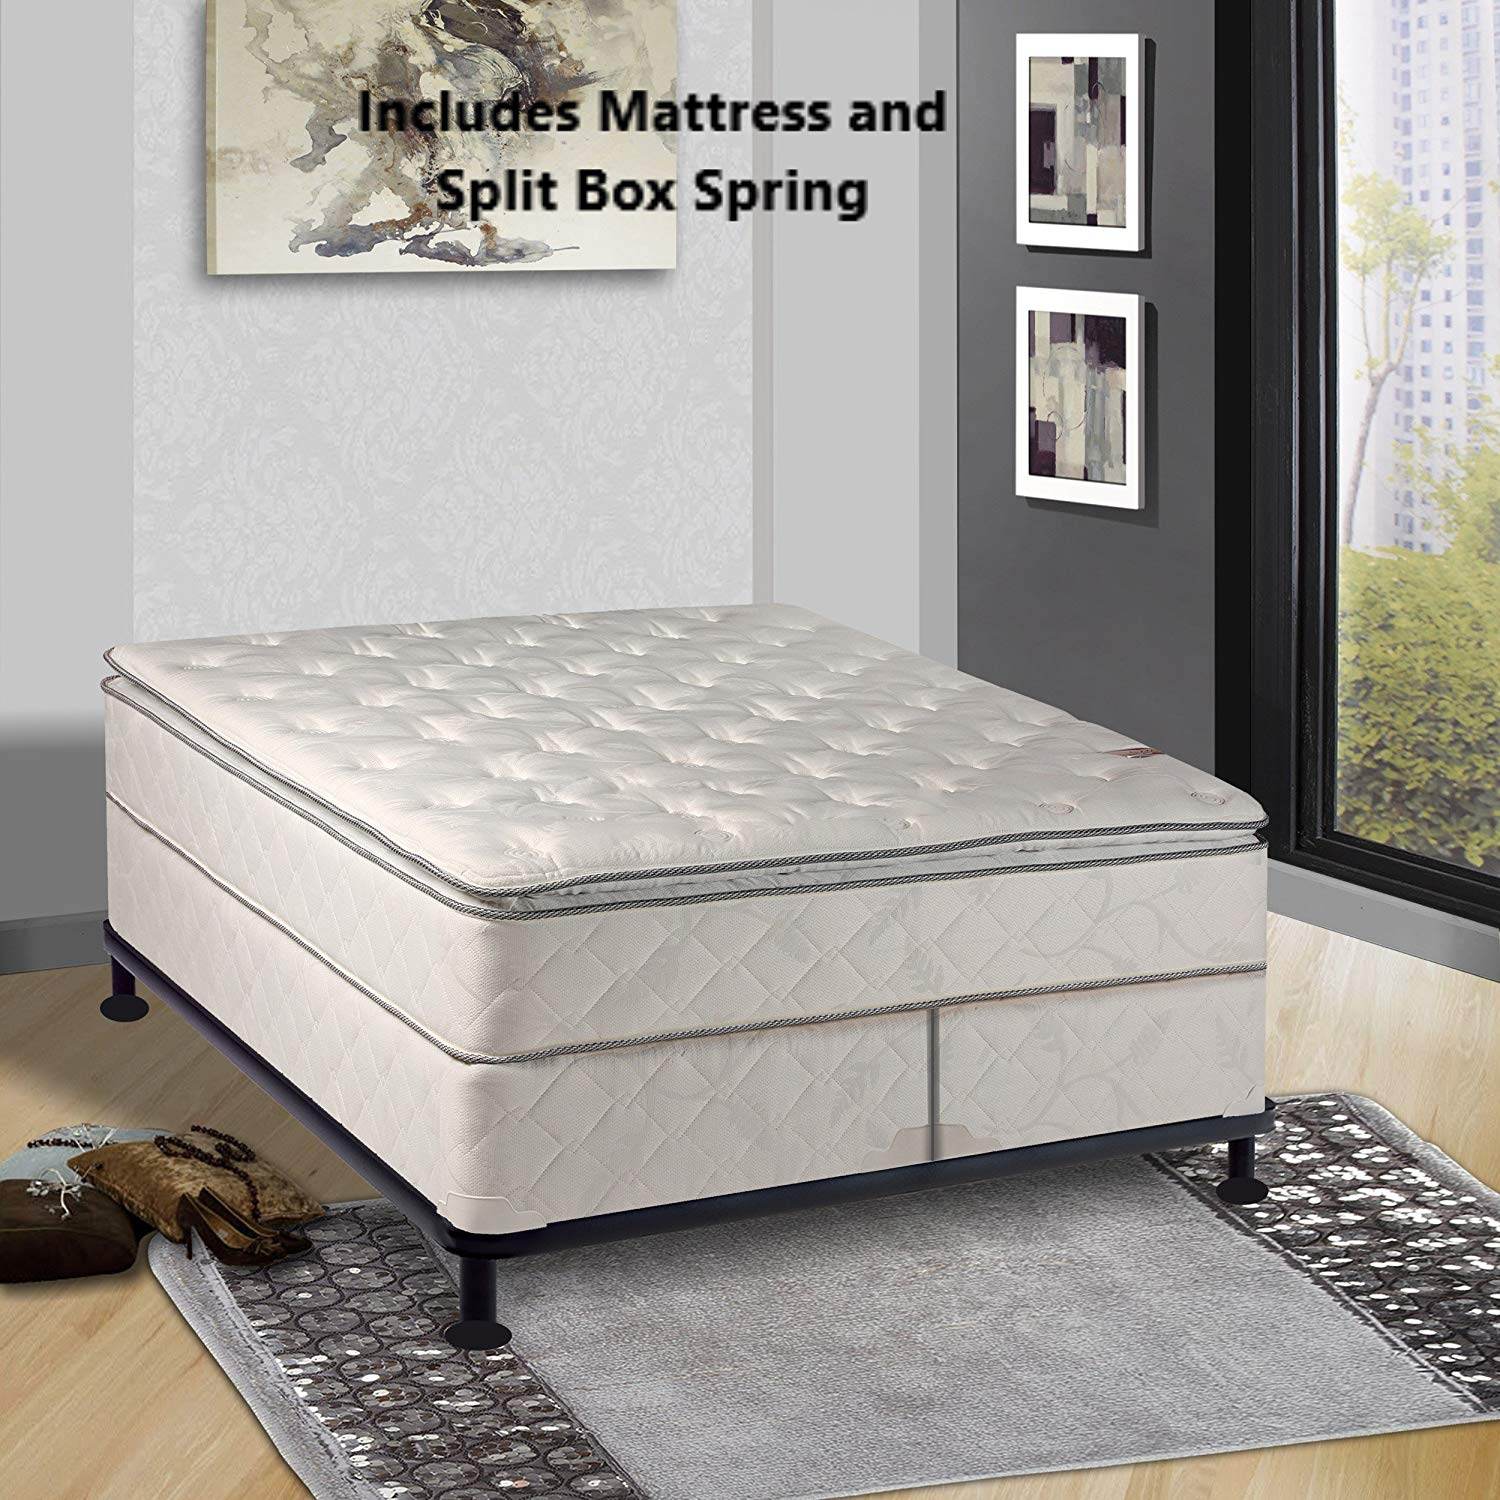 "Mattress Solution, 301y-6/6-2S 10-Inch Medium 12 Plush Pillowtop Double-Sided Innerspring Mattress and 8"" Split Box Spring/Foundation Set, Princess Collection, King Size, White with black tape"